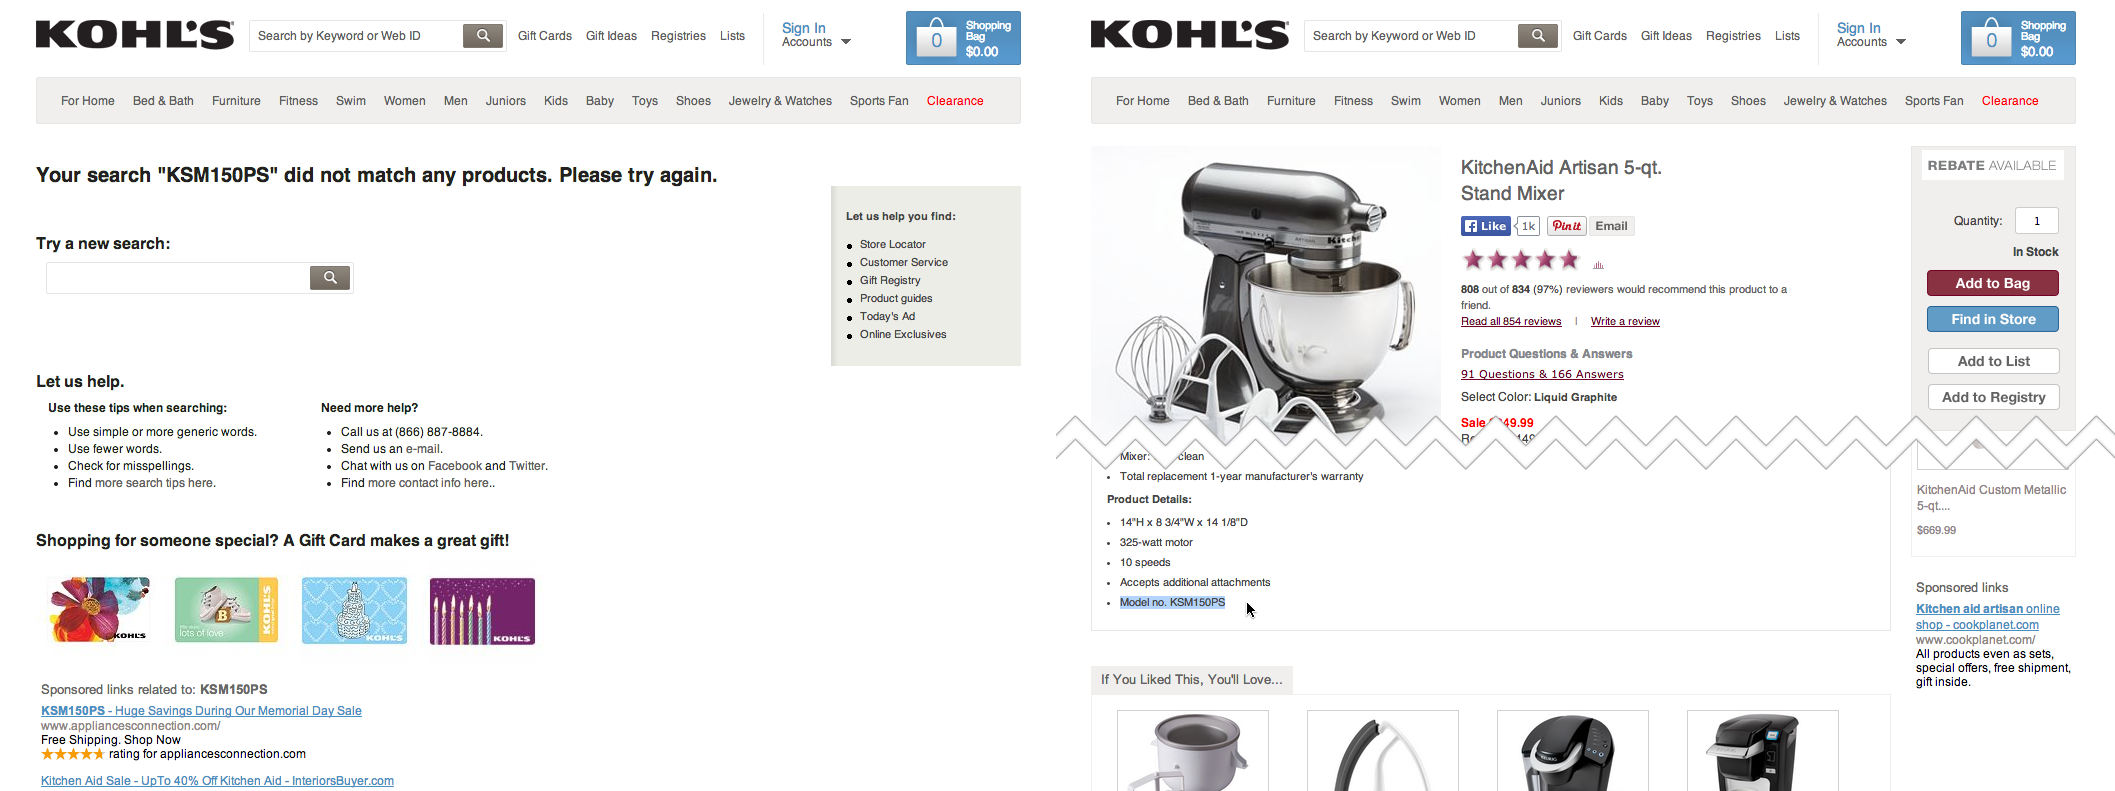 Search for a product by - When A User Searches For A Model Name At Kohl S They Won T Find Anything Even If That Exact Model Number Is Available In The Product Description